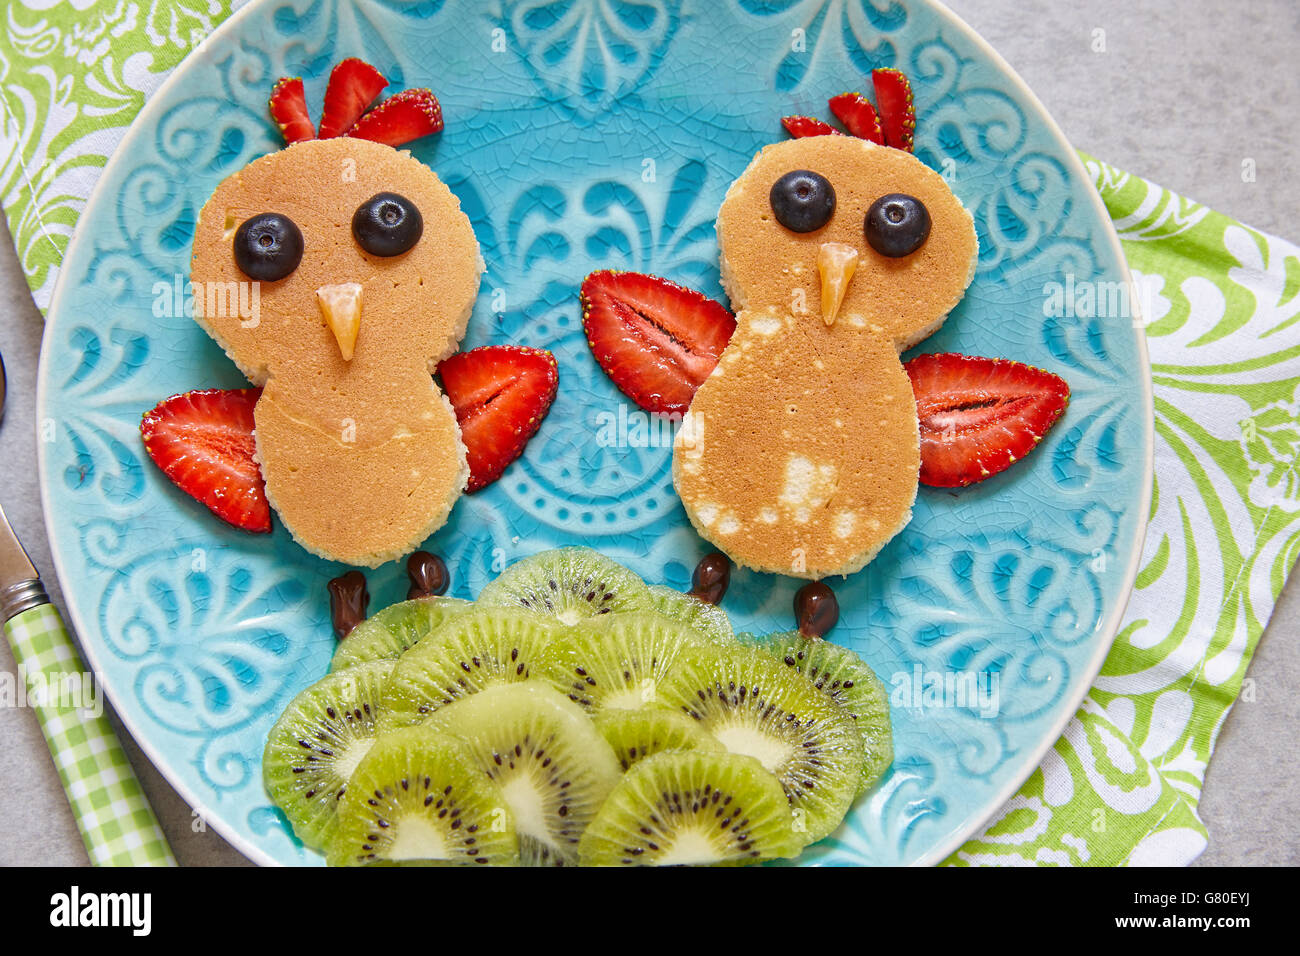 Funny chickens pancakes with berries for kids breakfast - Stock Image